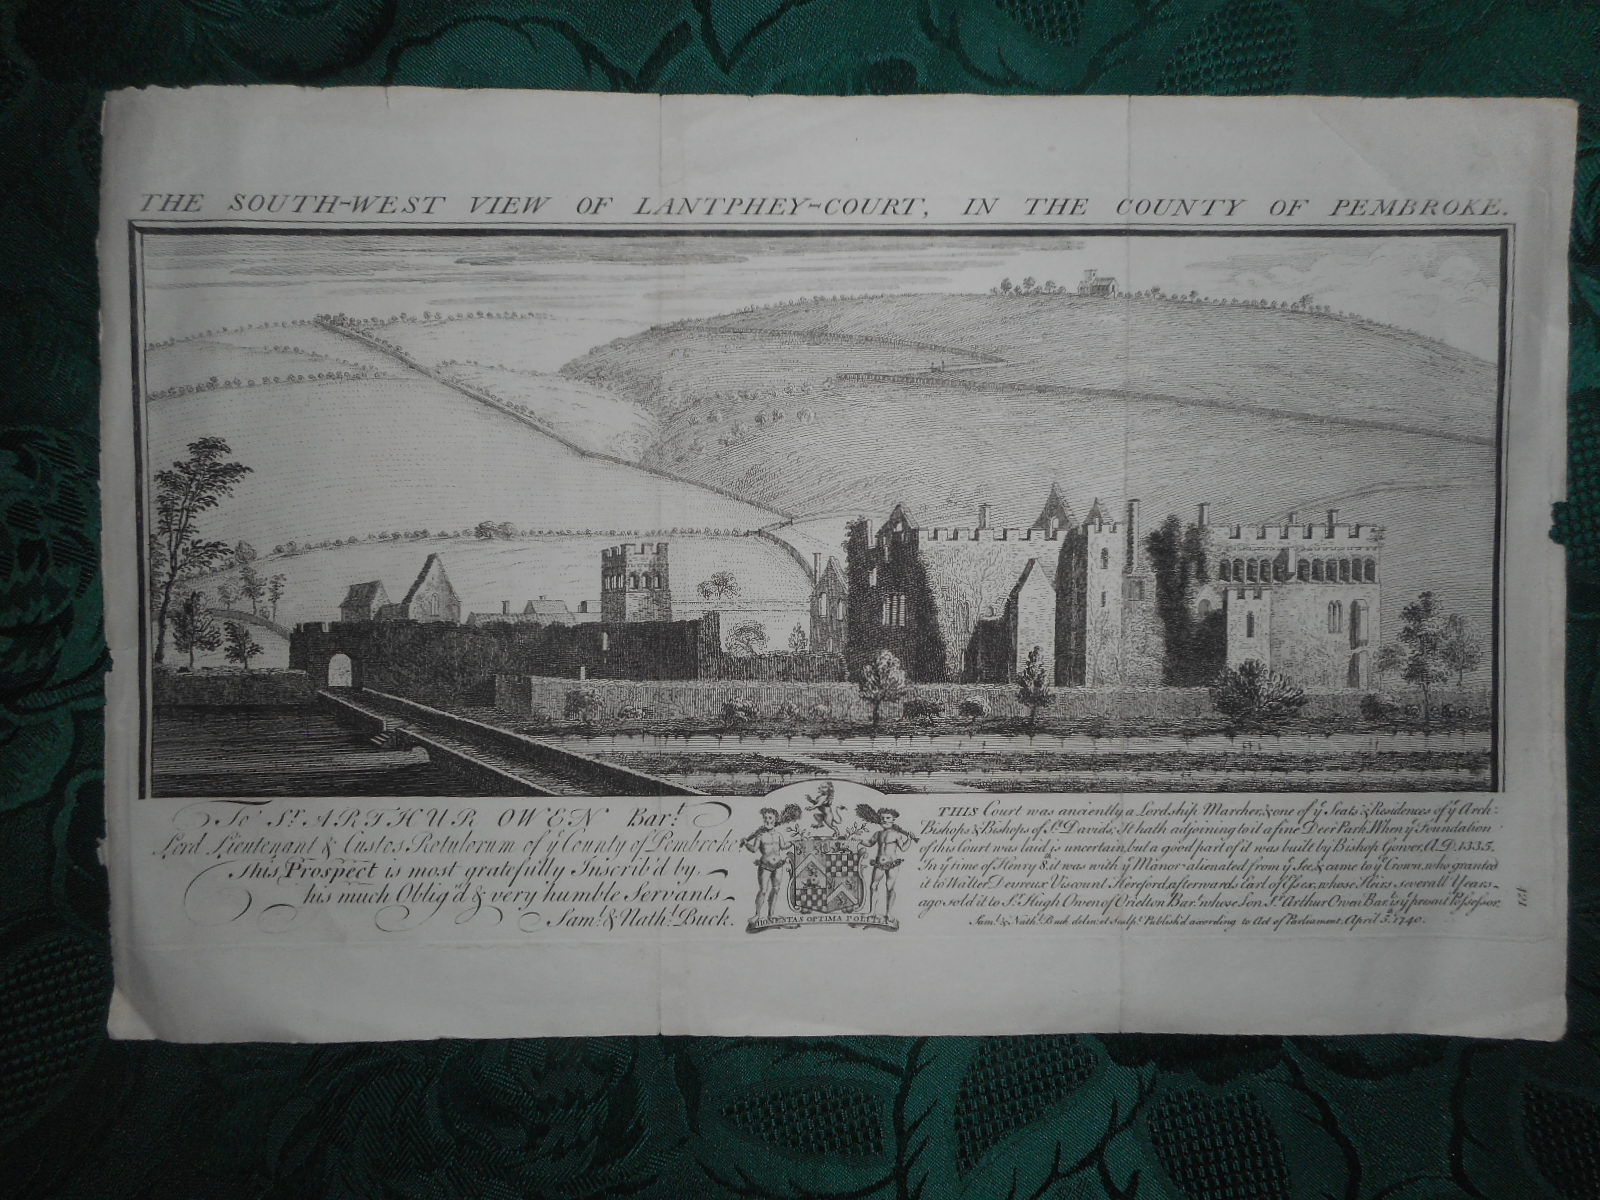 Image for The South-West View of Lantphey-Court, in the County of Pembroke. ORIGINAL Antique Copper Engraving.   ( Modern Day Name = Lamphey Court  Aka  The Bishop's Palace )